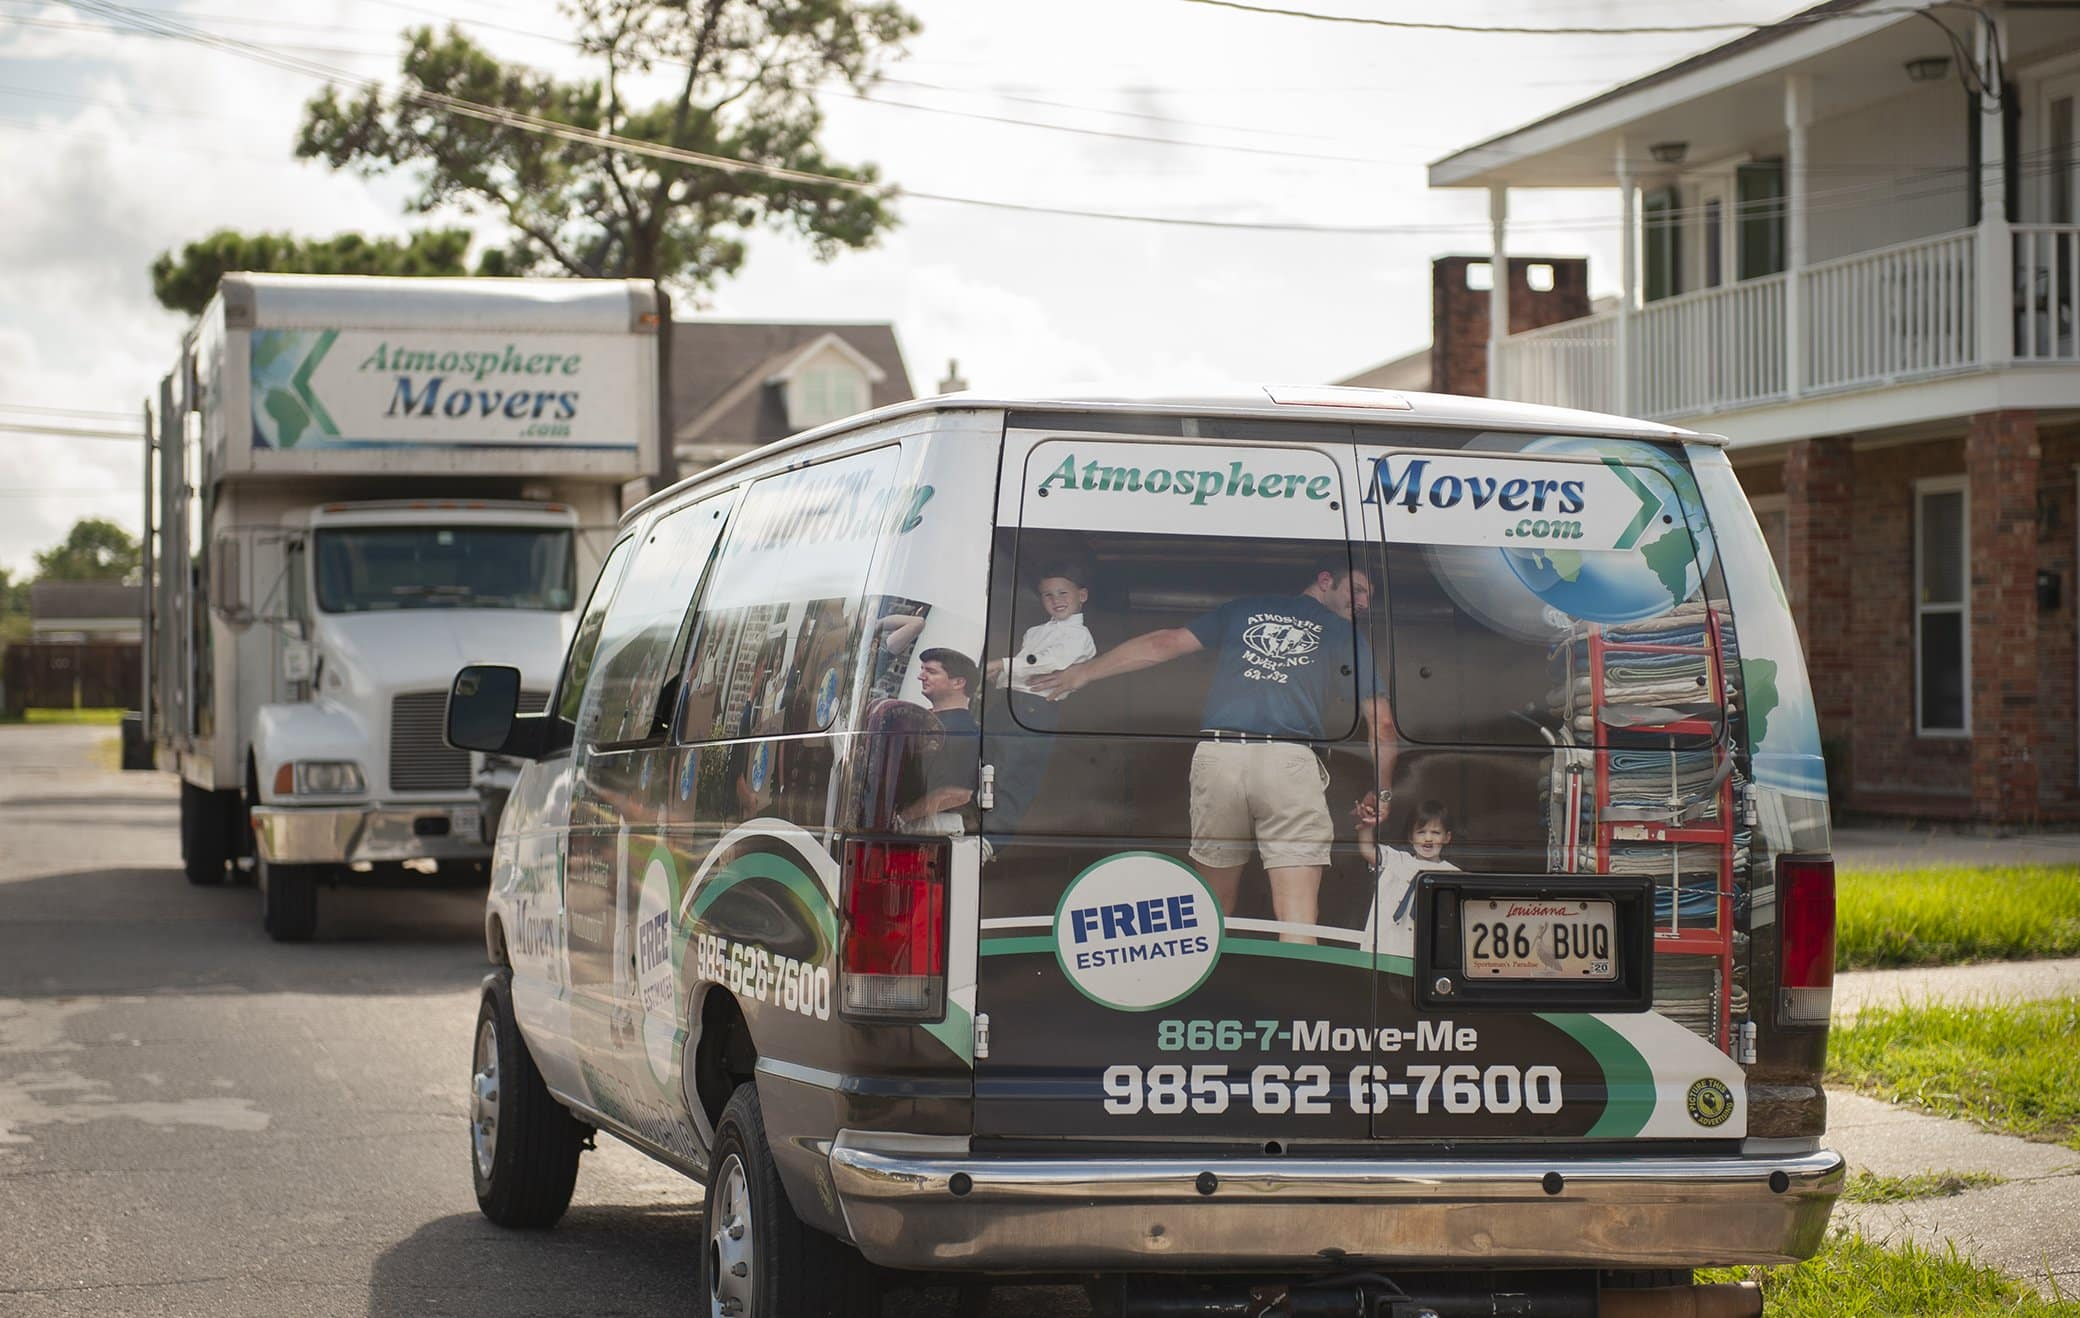 Atmosphere Movers 22